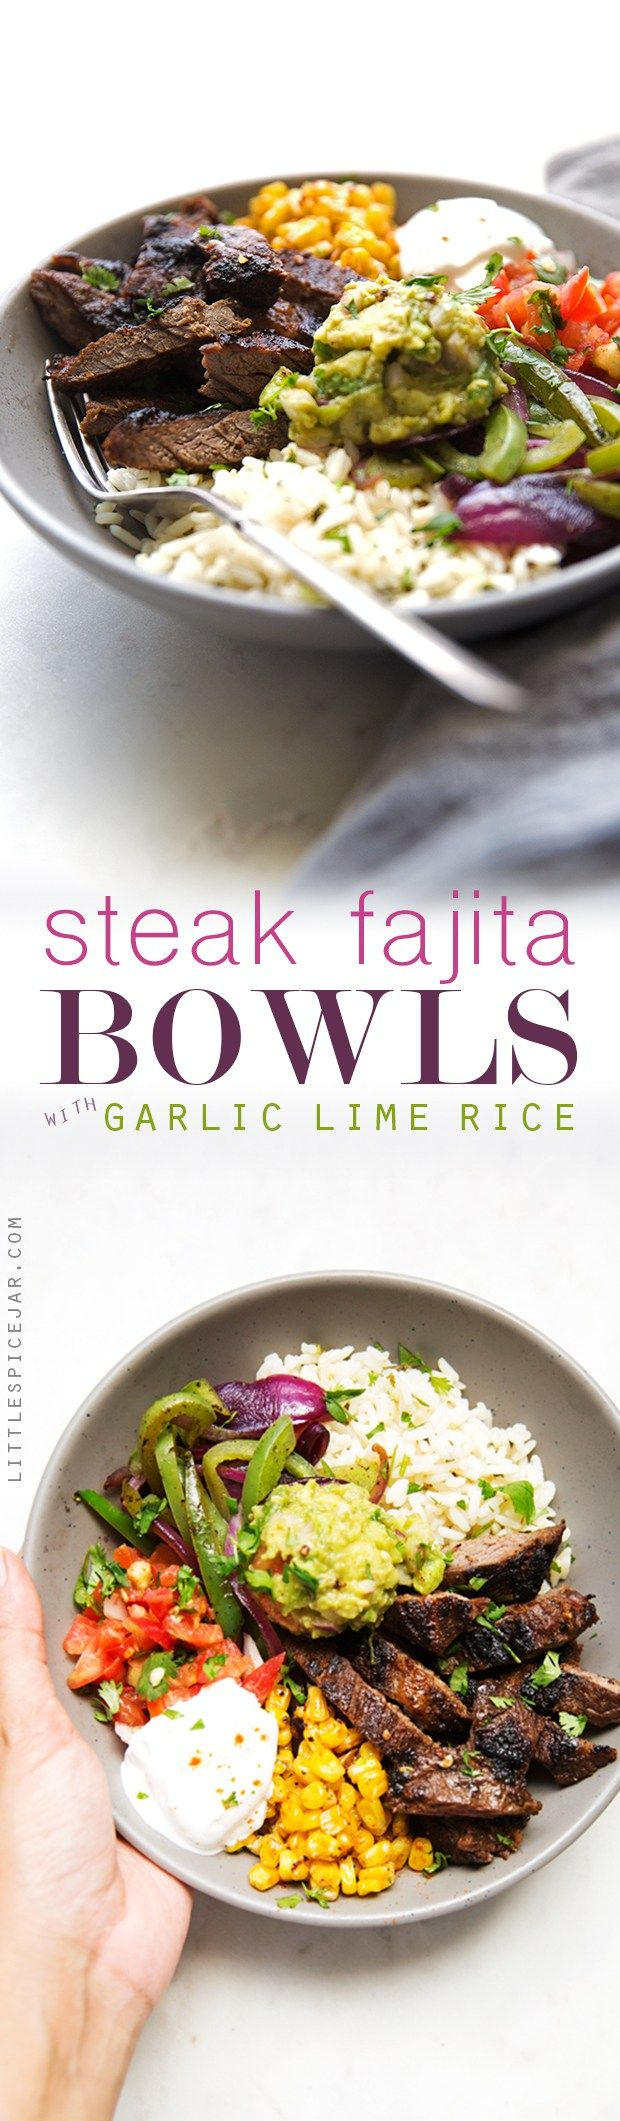 Homemade steak fajita bowls with garlic lime rice. These fajita bowls taste even better than the ones at Chipotle! The secret is the homemade marinade for the steak... it is to DIE for! #steakfajita #steakfajitabowls #fajitabowls #bowls | littlespicejar.com